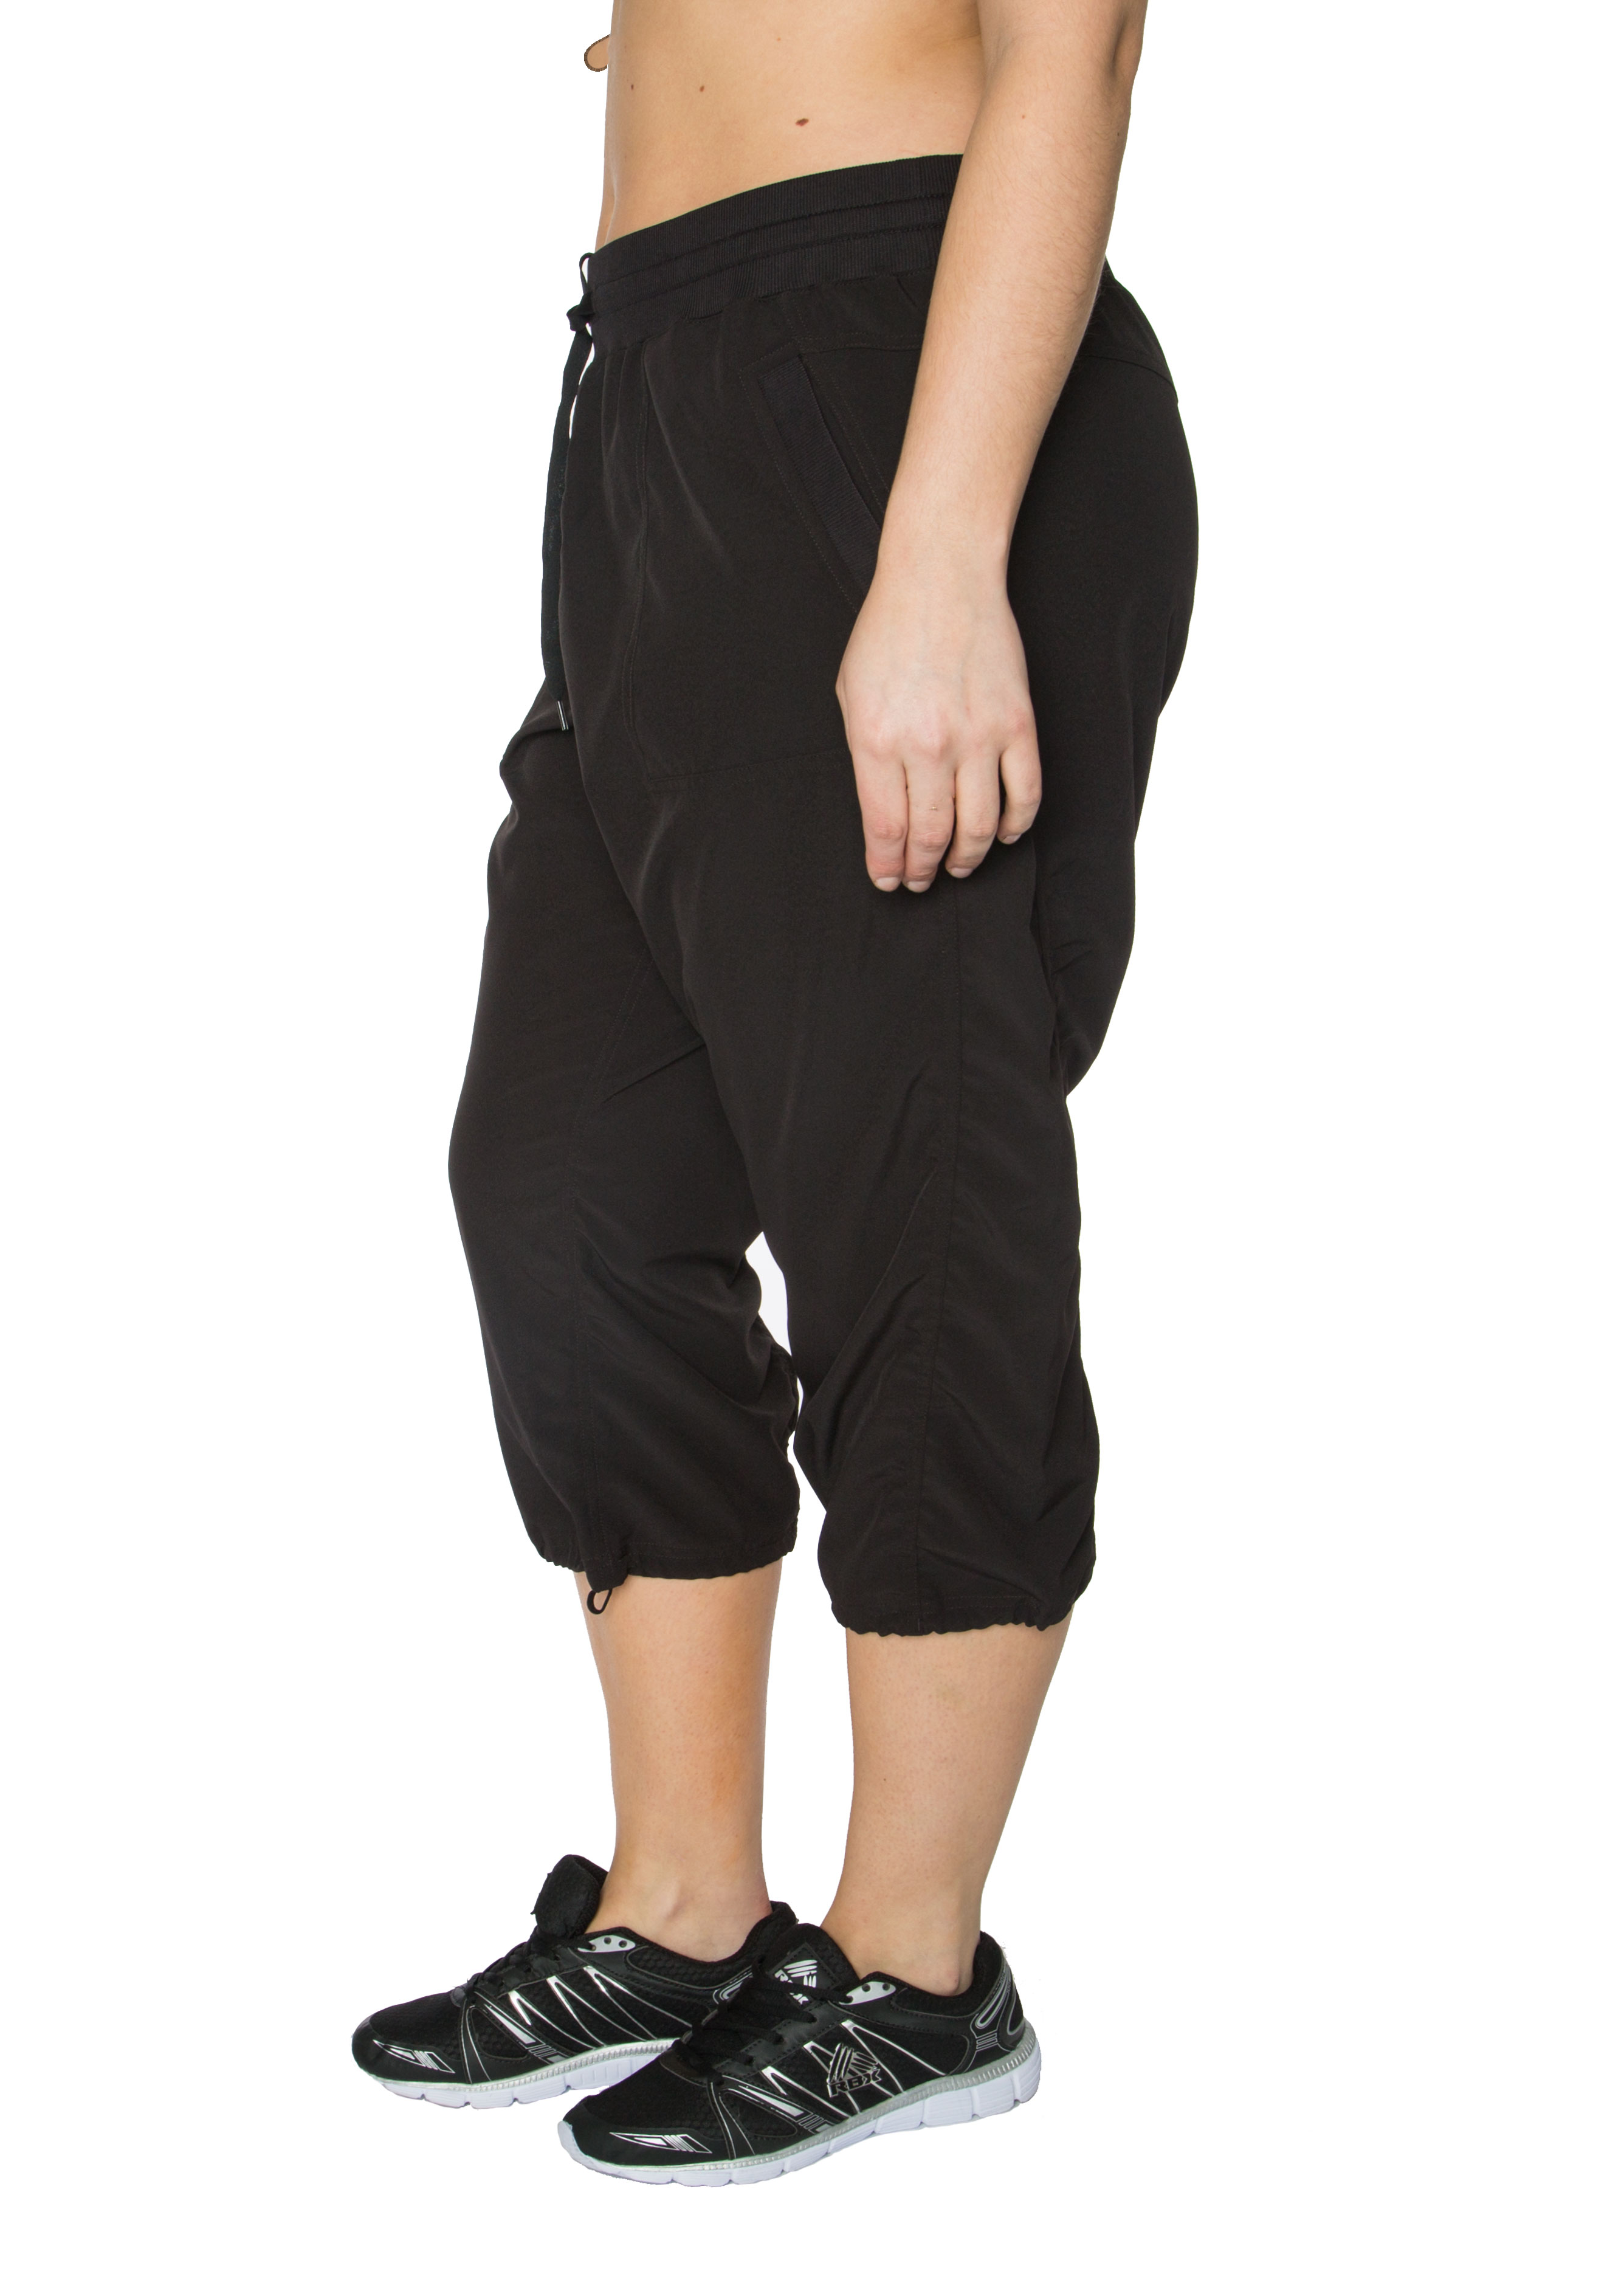 Find great deals on eBay for plus size zumba pants. Shop with confidence.